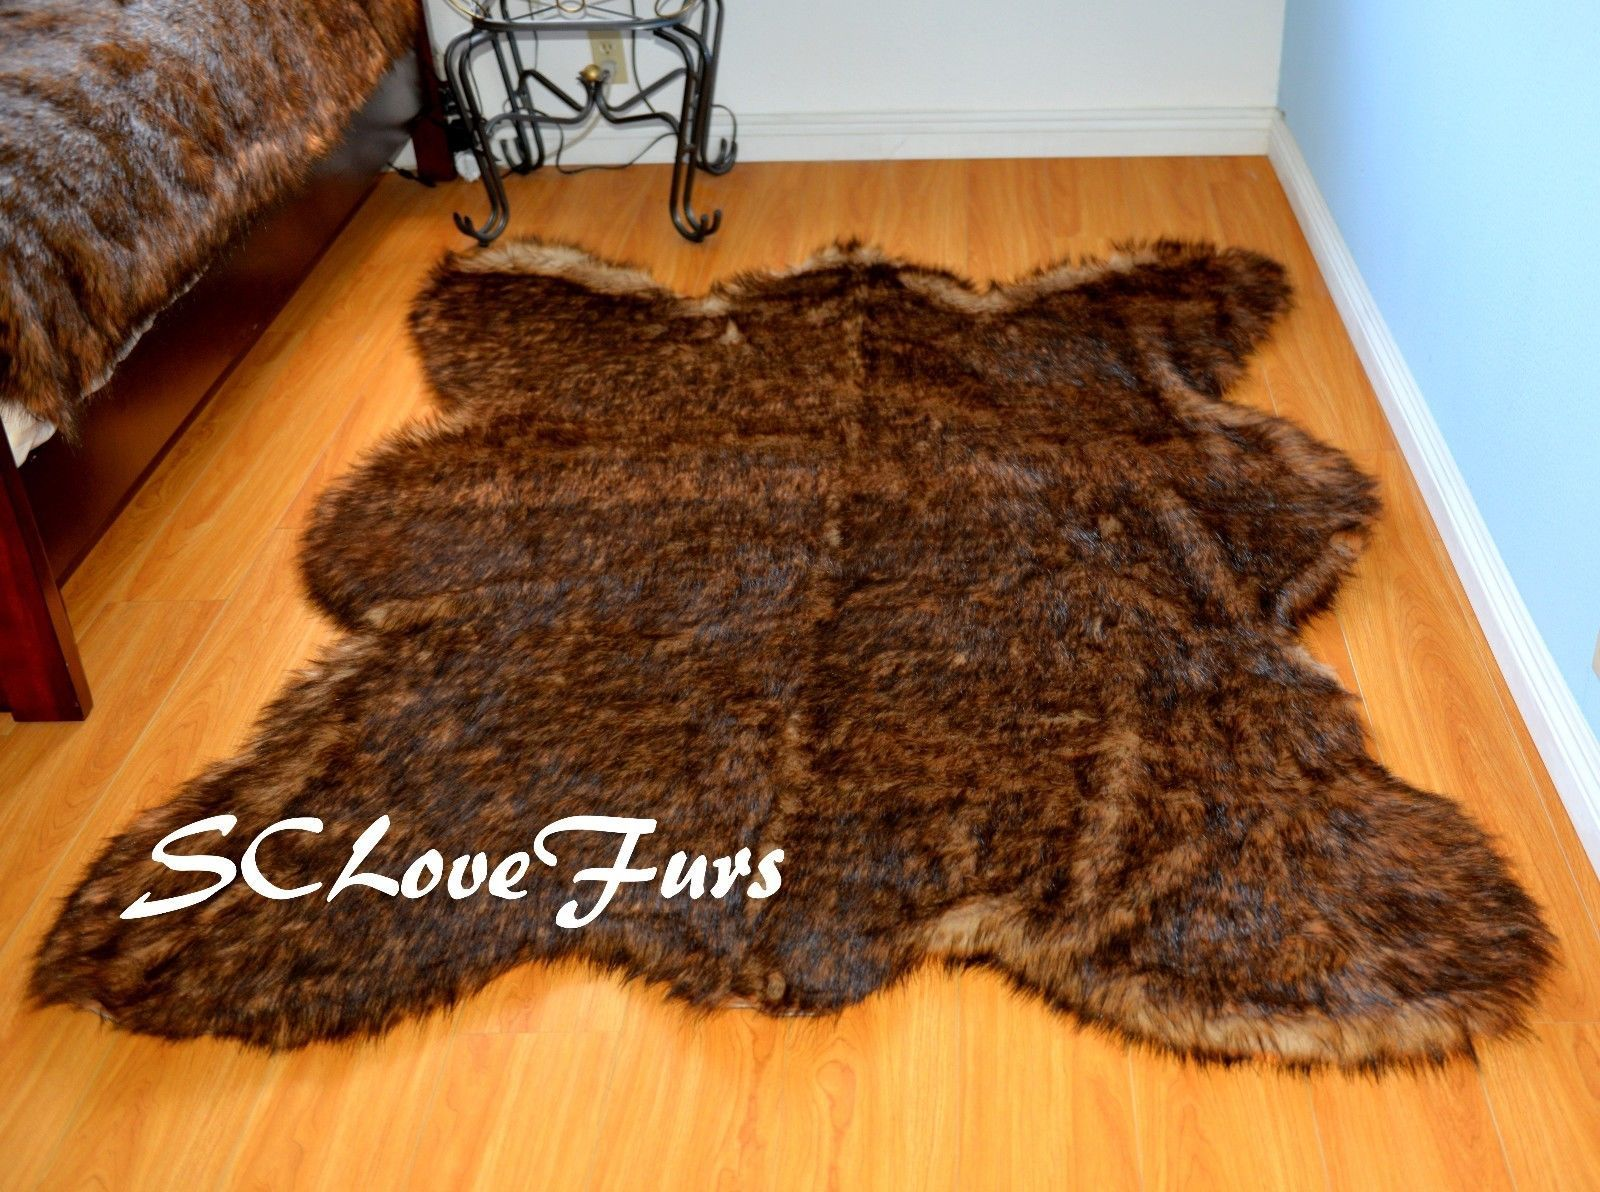 5 X 7 Grizzly Bear Skin Faux Fur Area Rug Plush Lodge Cabin Accents Decors